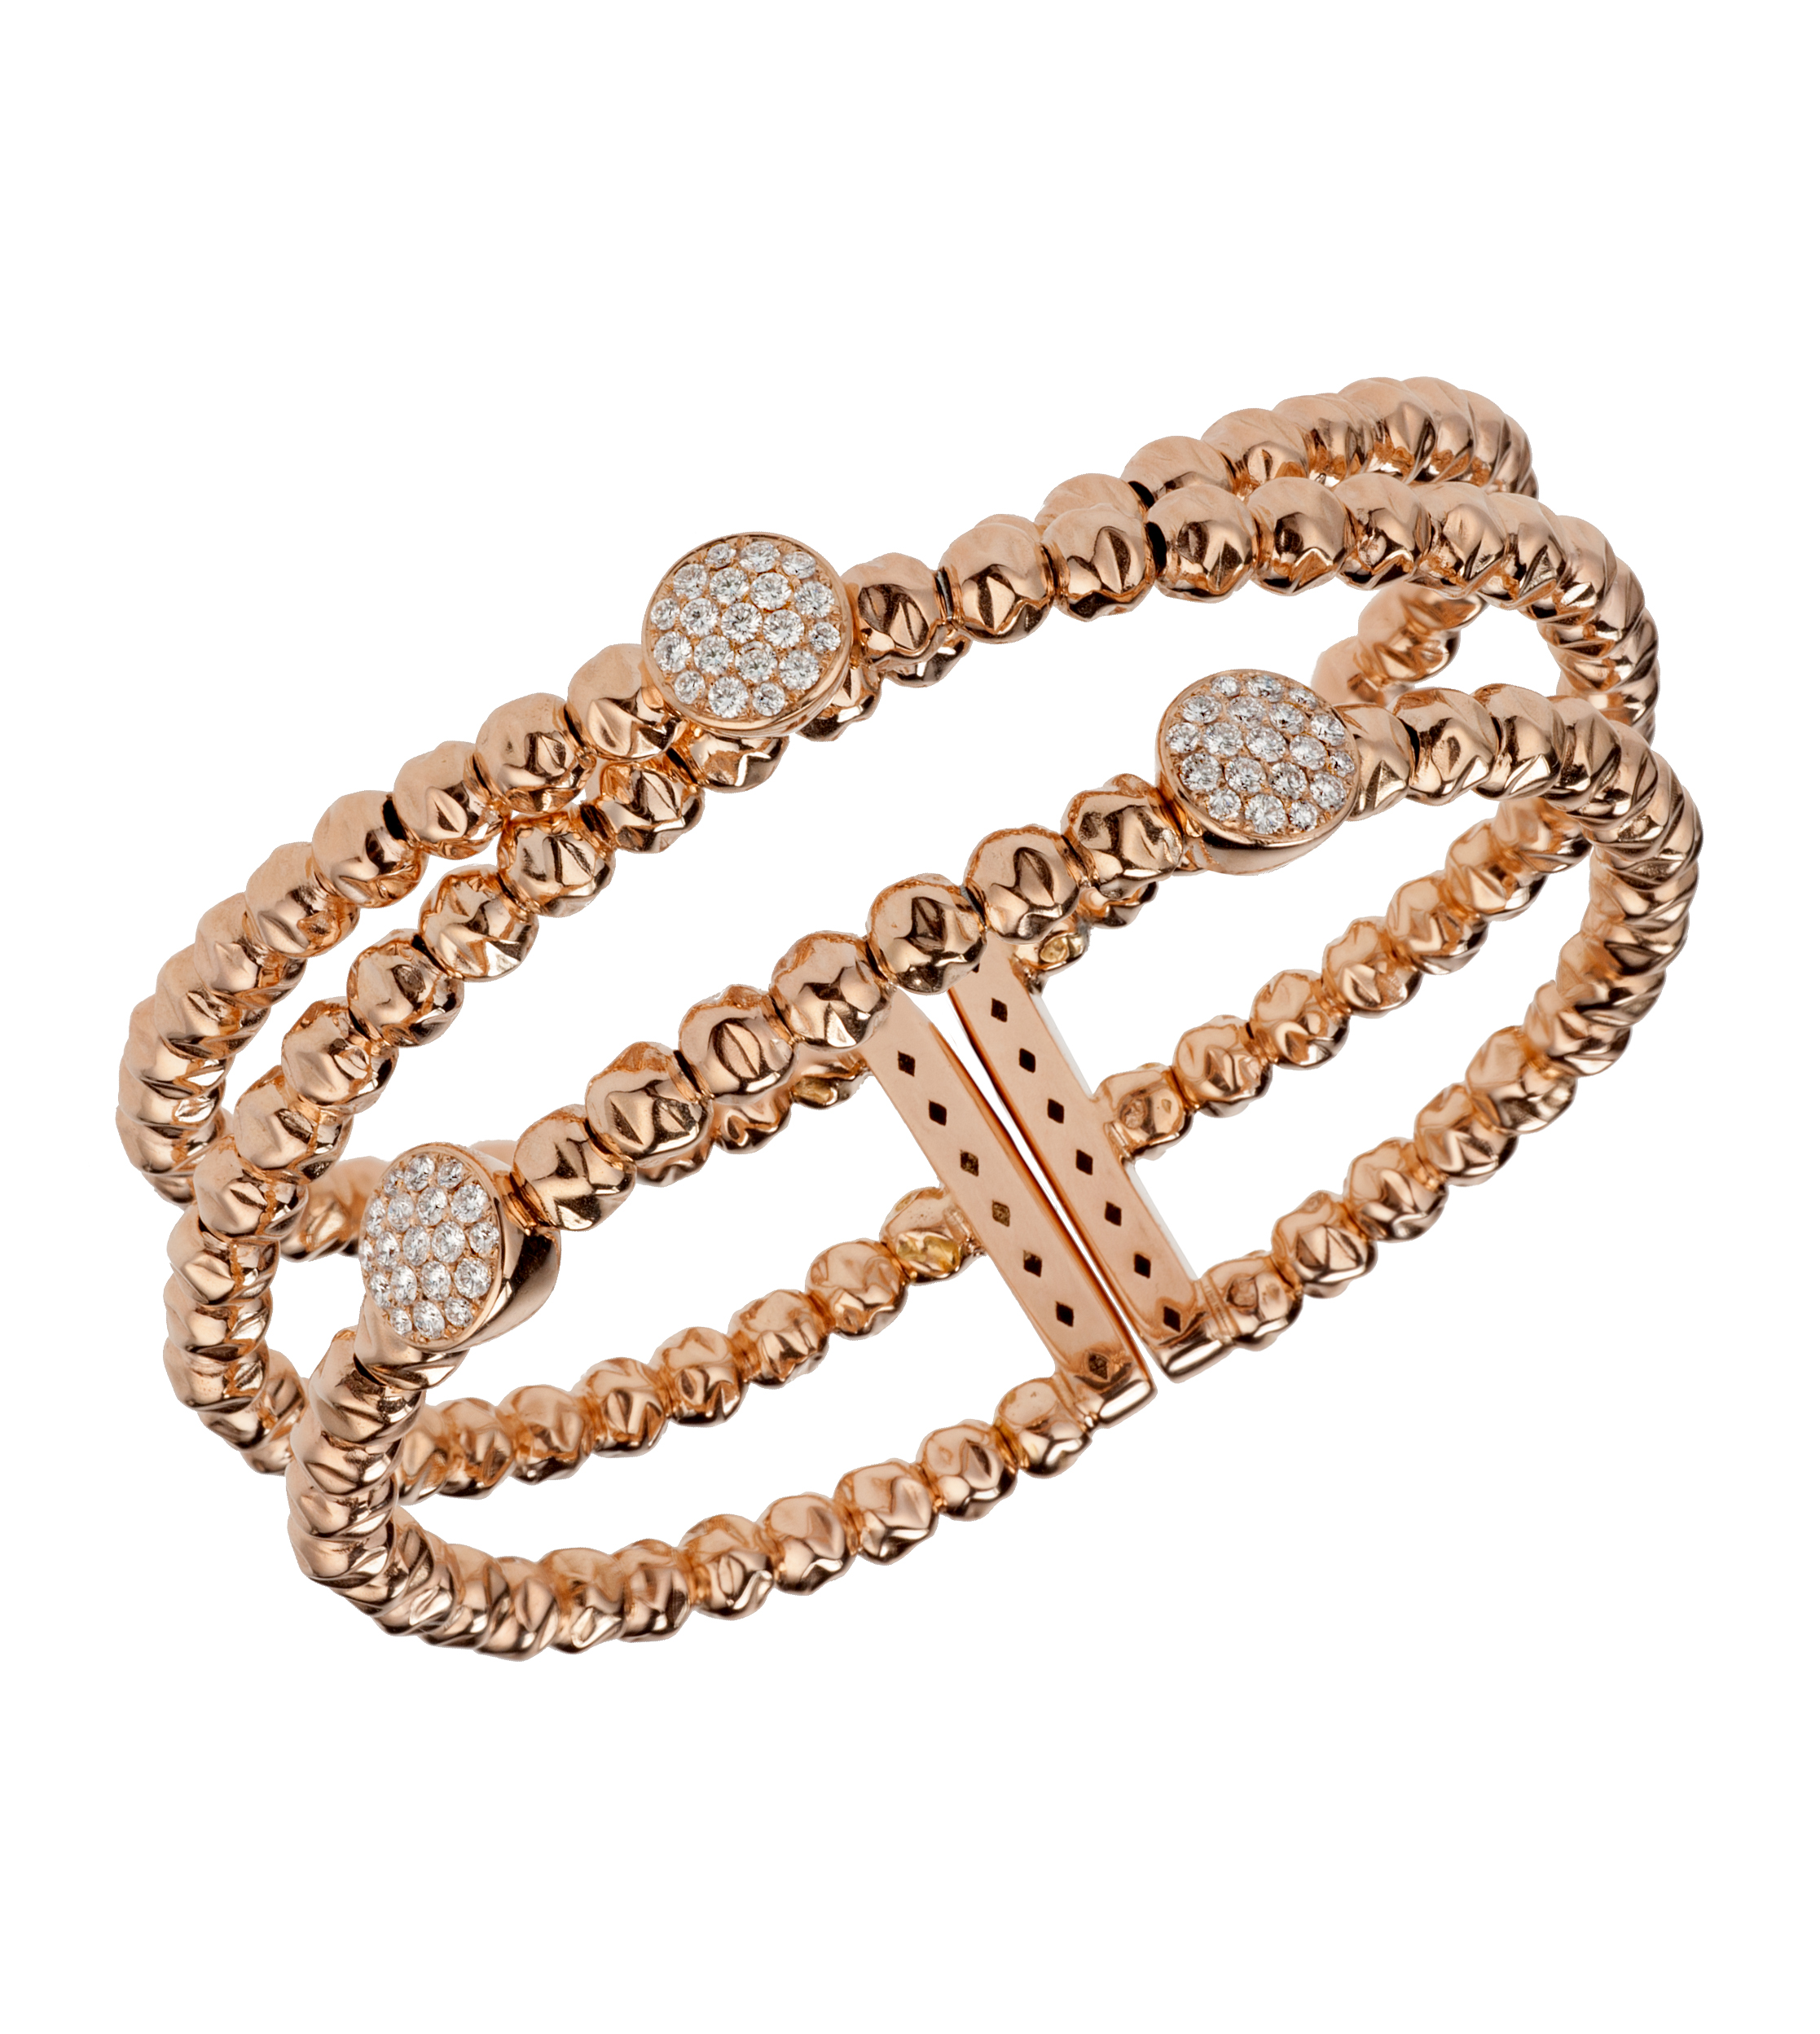 Damaso Martinez diamond and 18-karat rose gold bracelet